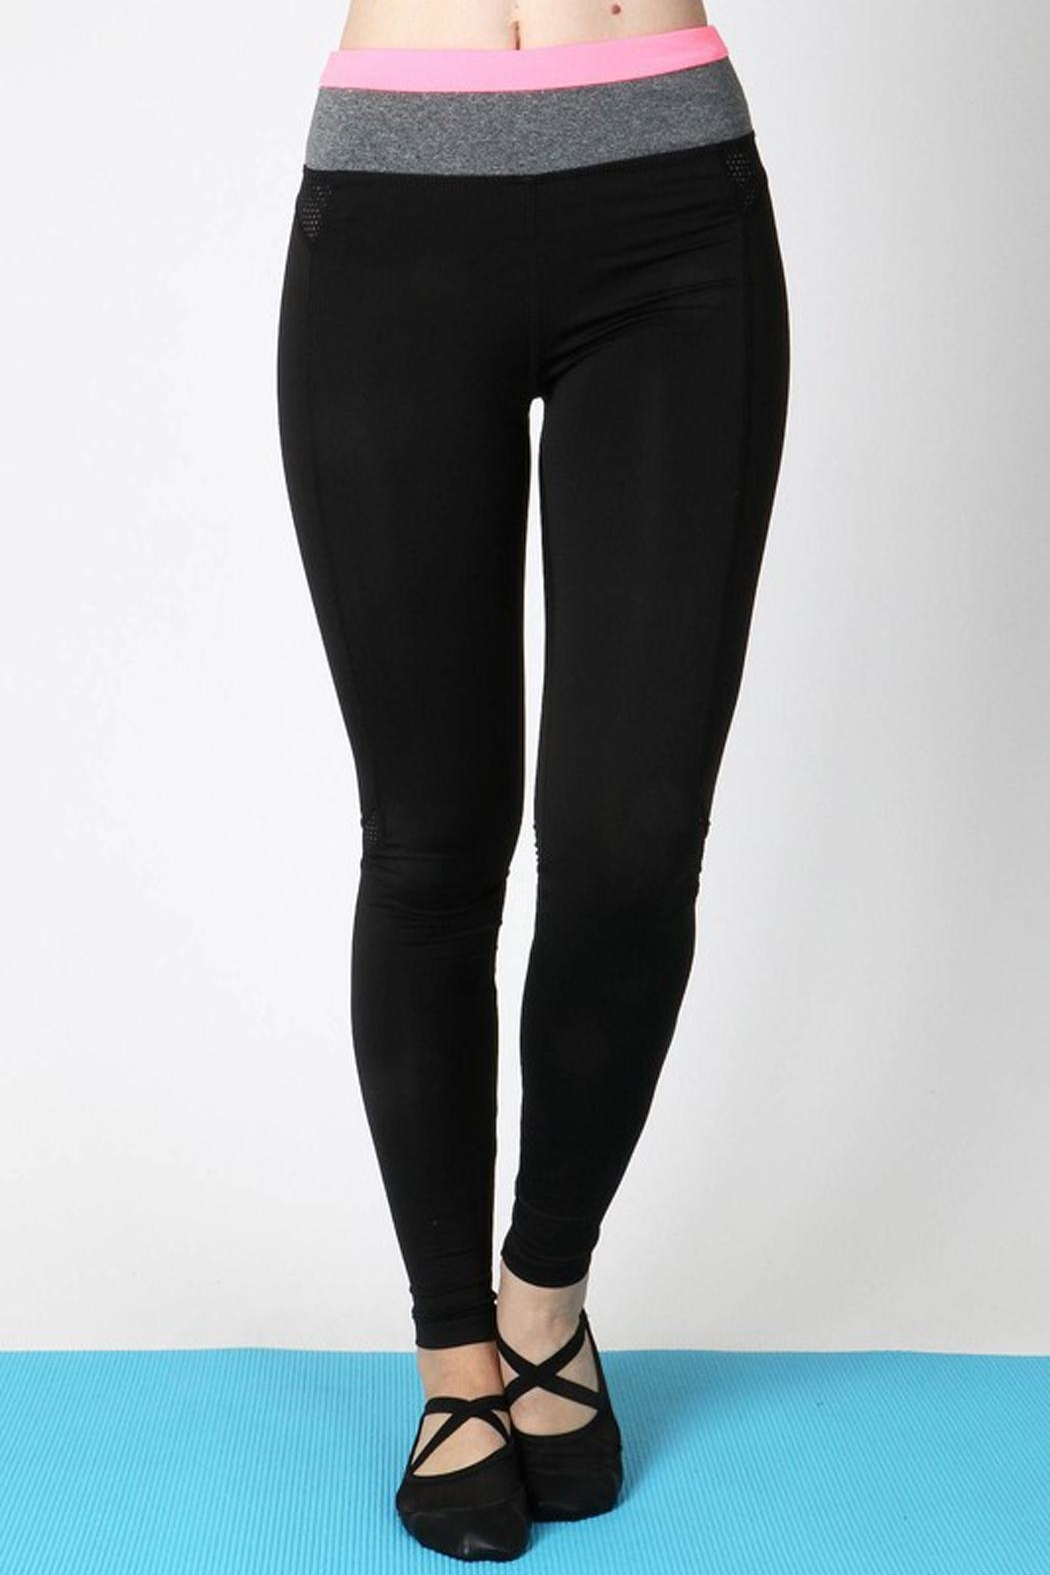 Zenana Outfitters Active Block Pant - Front Cropped Image